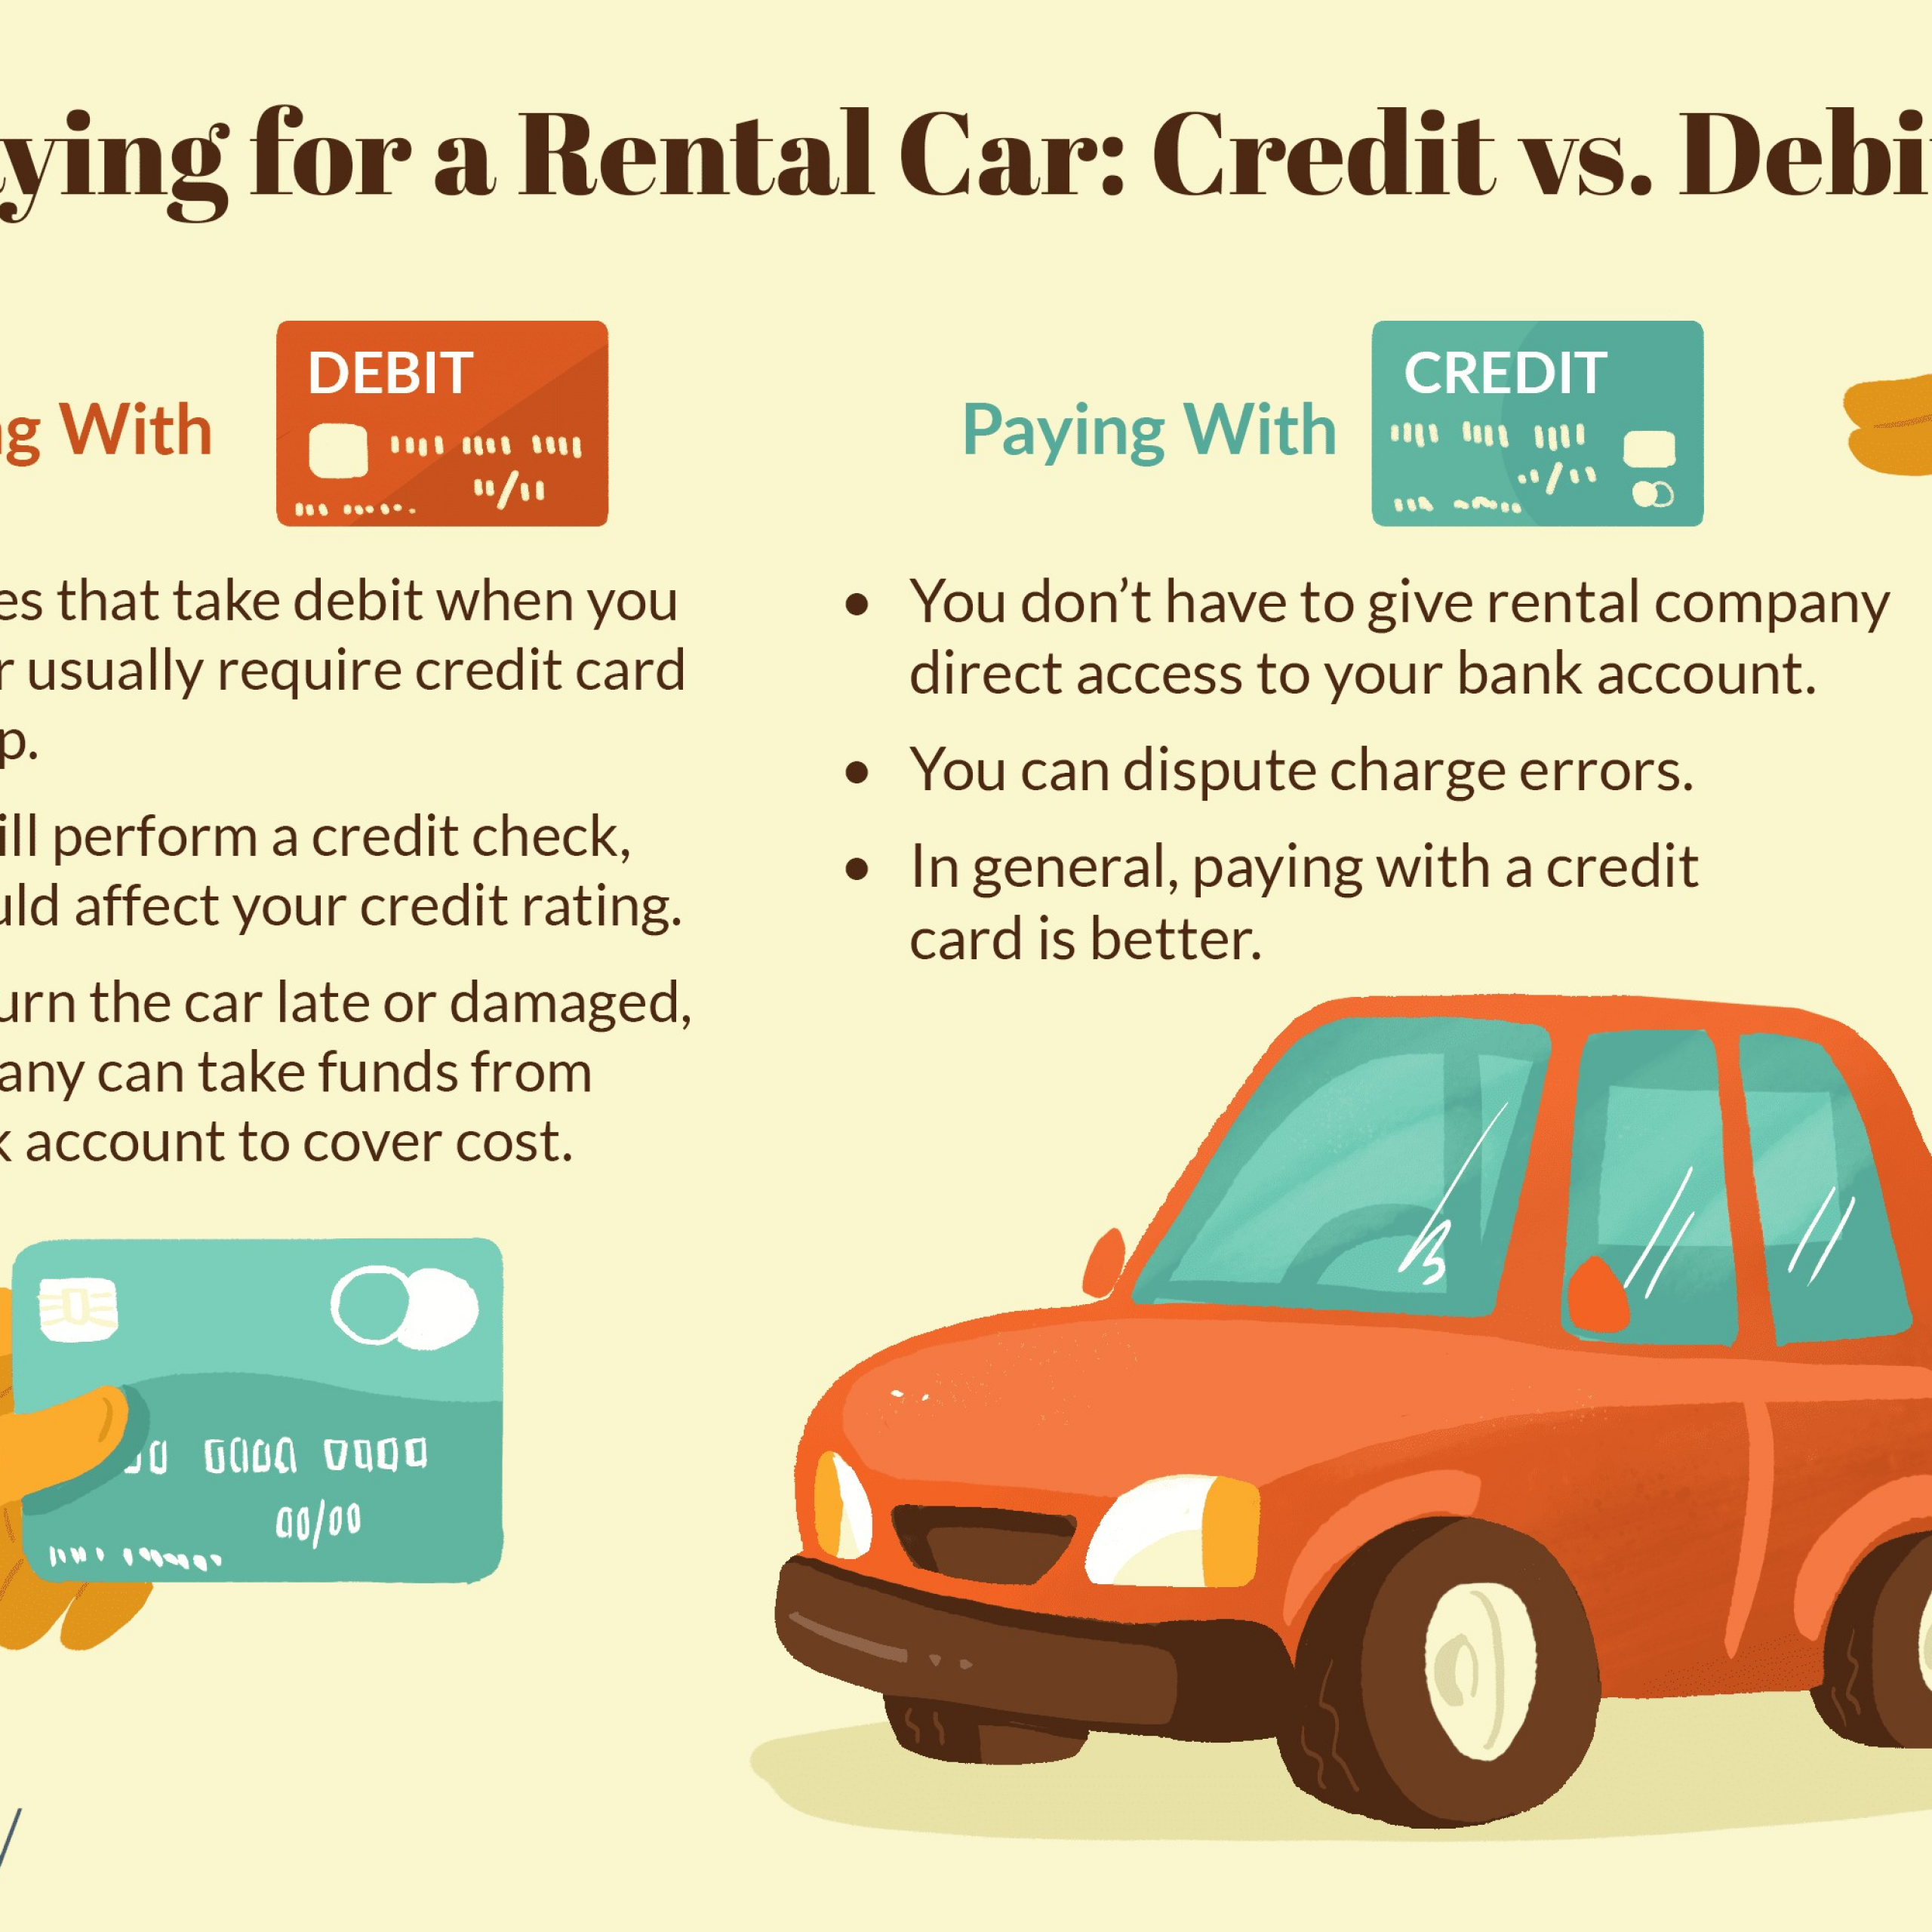 Rental Cars for Sale Near Me Luxury Rental Cars Paying with Credit or Debit Cards